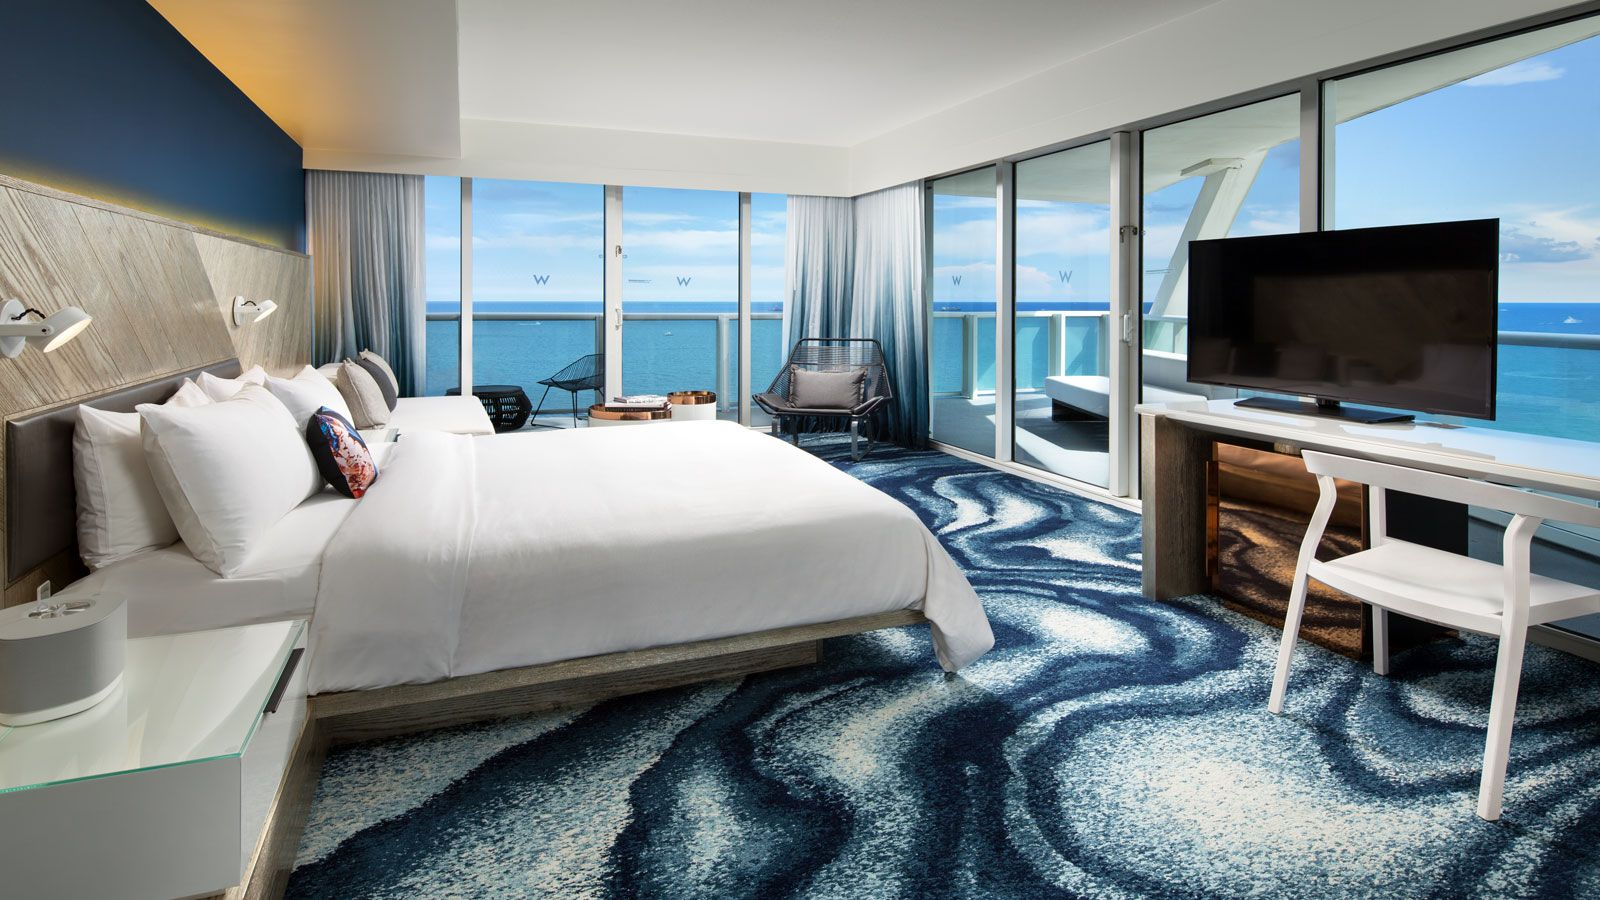 Ft Lauderdale Accommodation Spectacular Ocean View Room